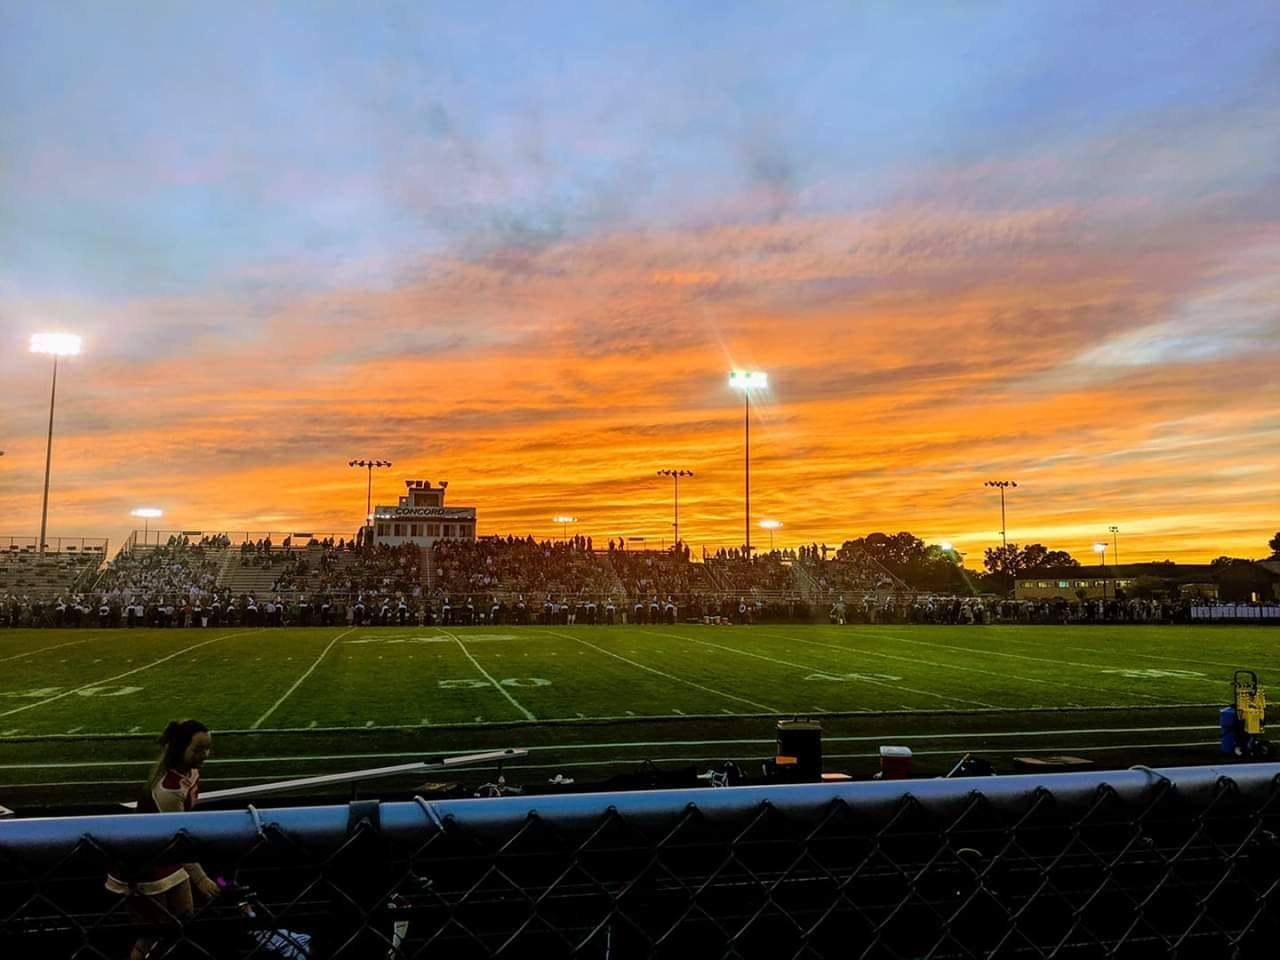 Sunrise over an athletic field